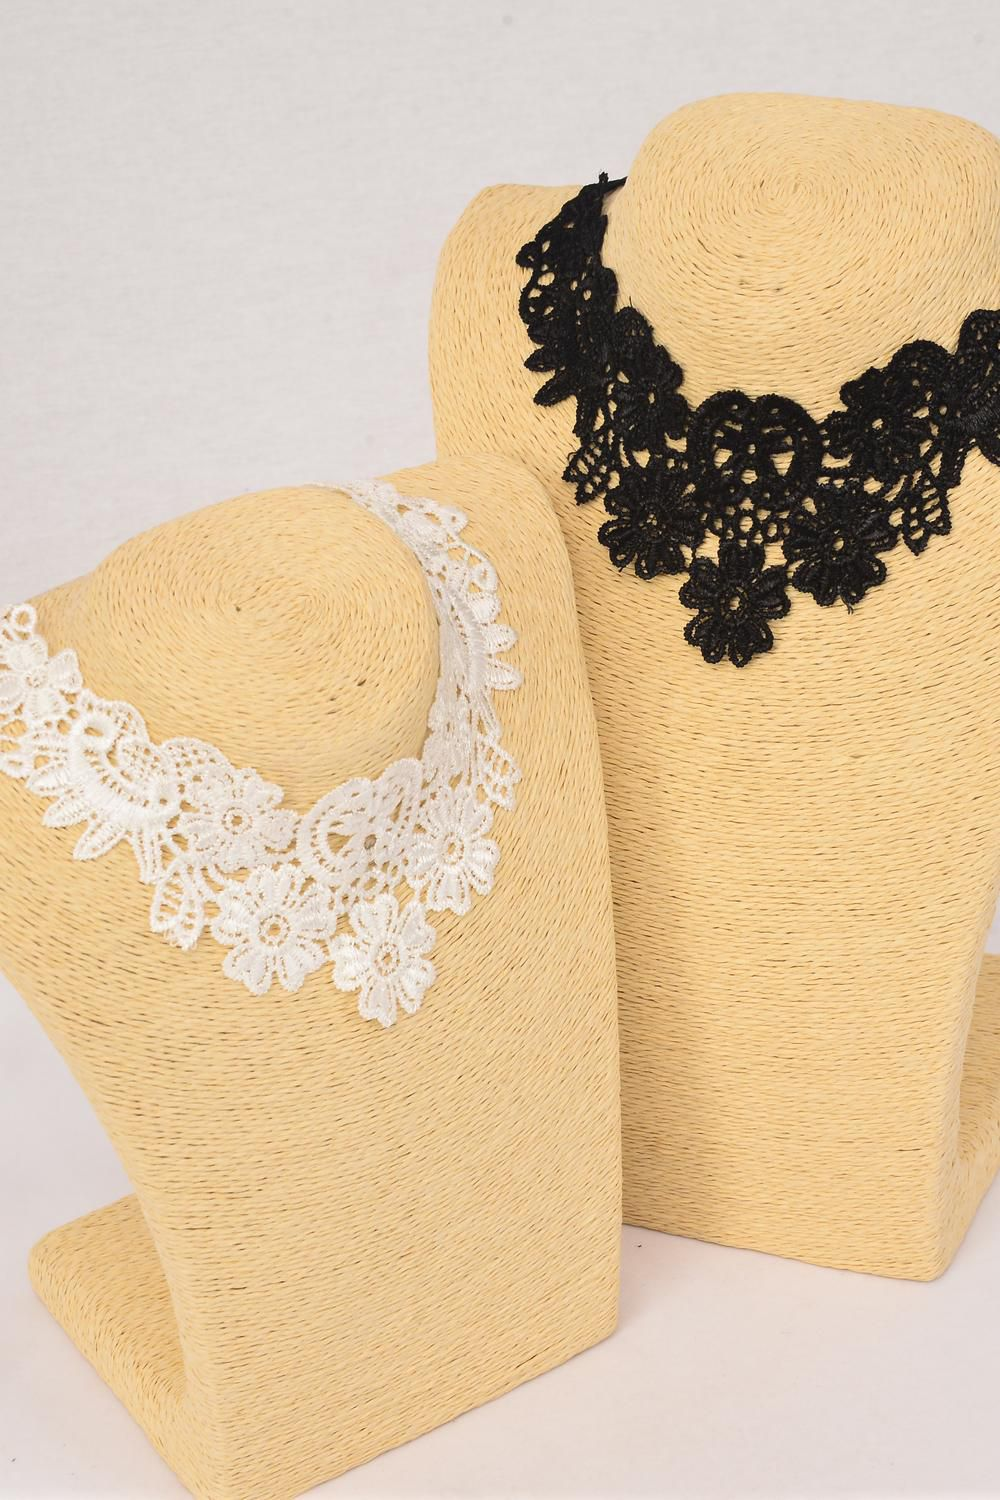 "Necklace Choker Lace V Shape Black & White Asst/DZ Size-14"" Extenstion Chain,8 Black,4 White Asst,Display Card & OPP Bag & UPC Code"